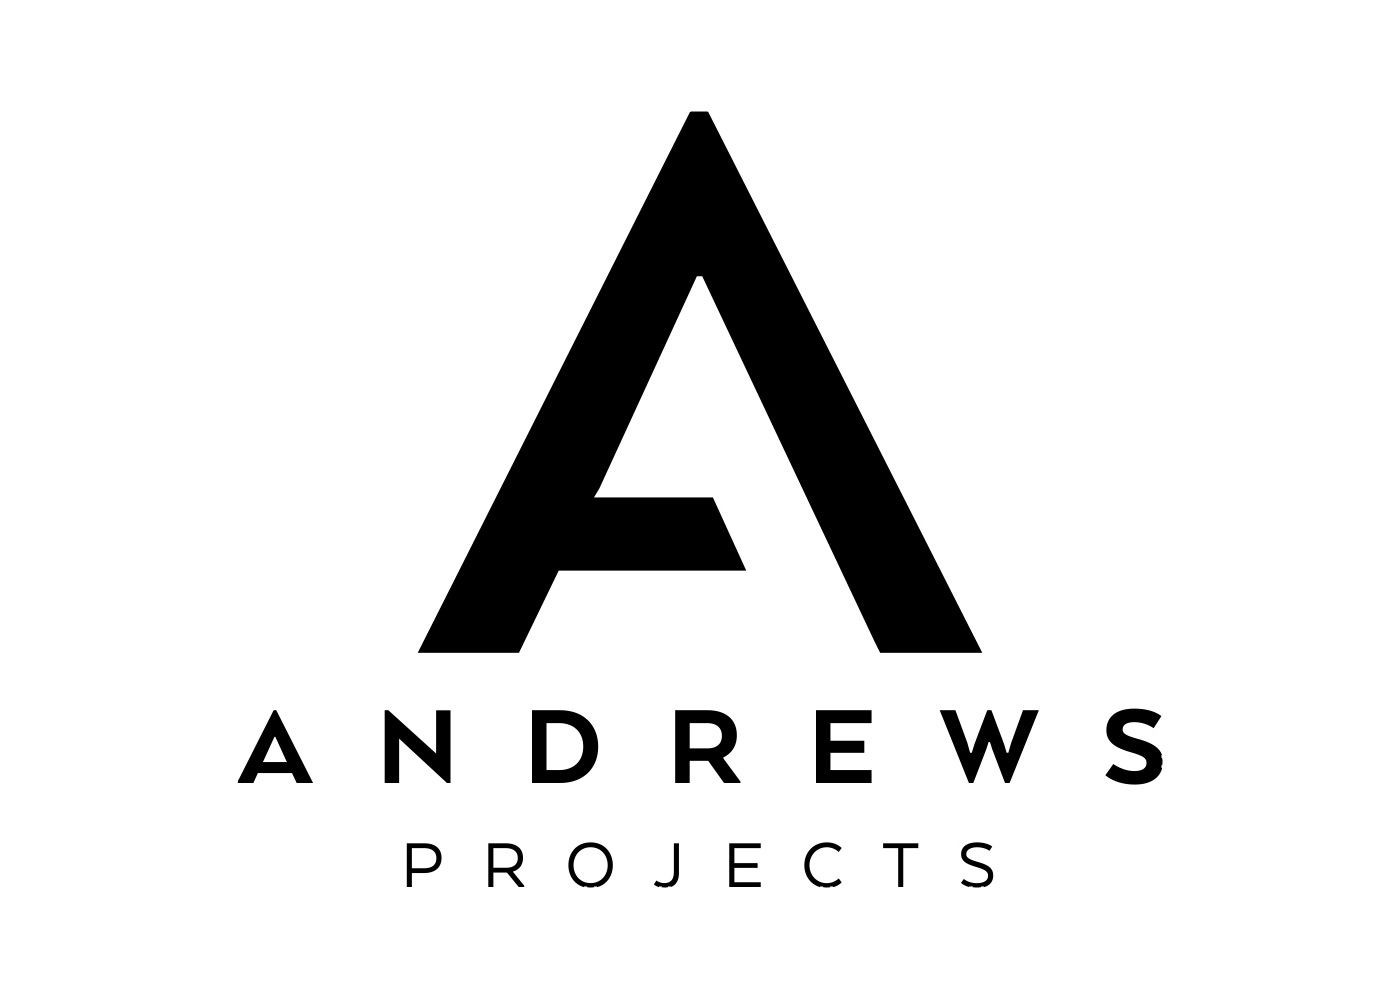 logo-andrews-projects.jpg